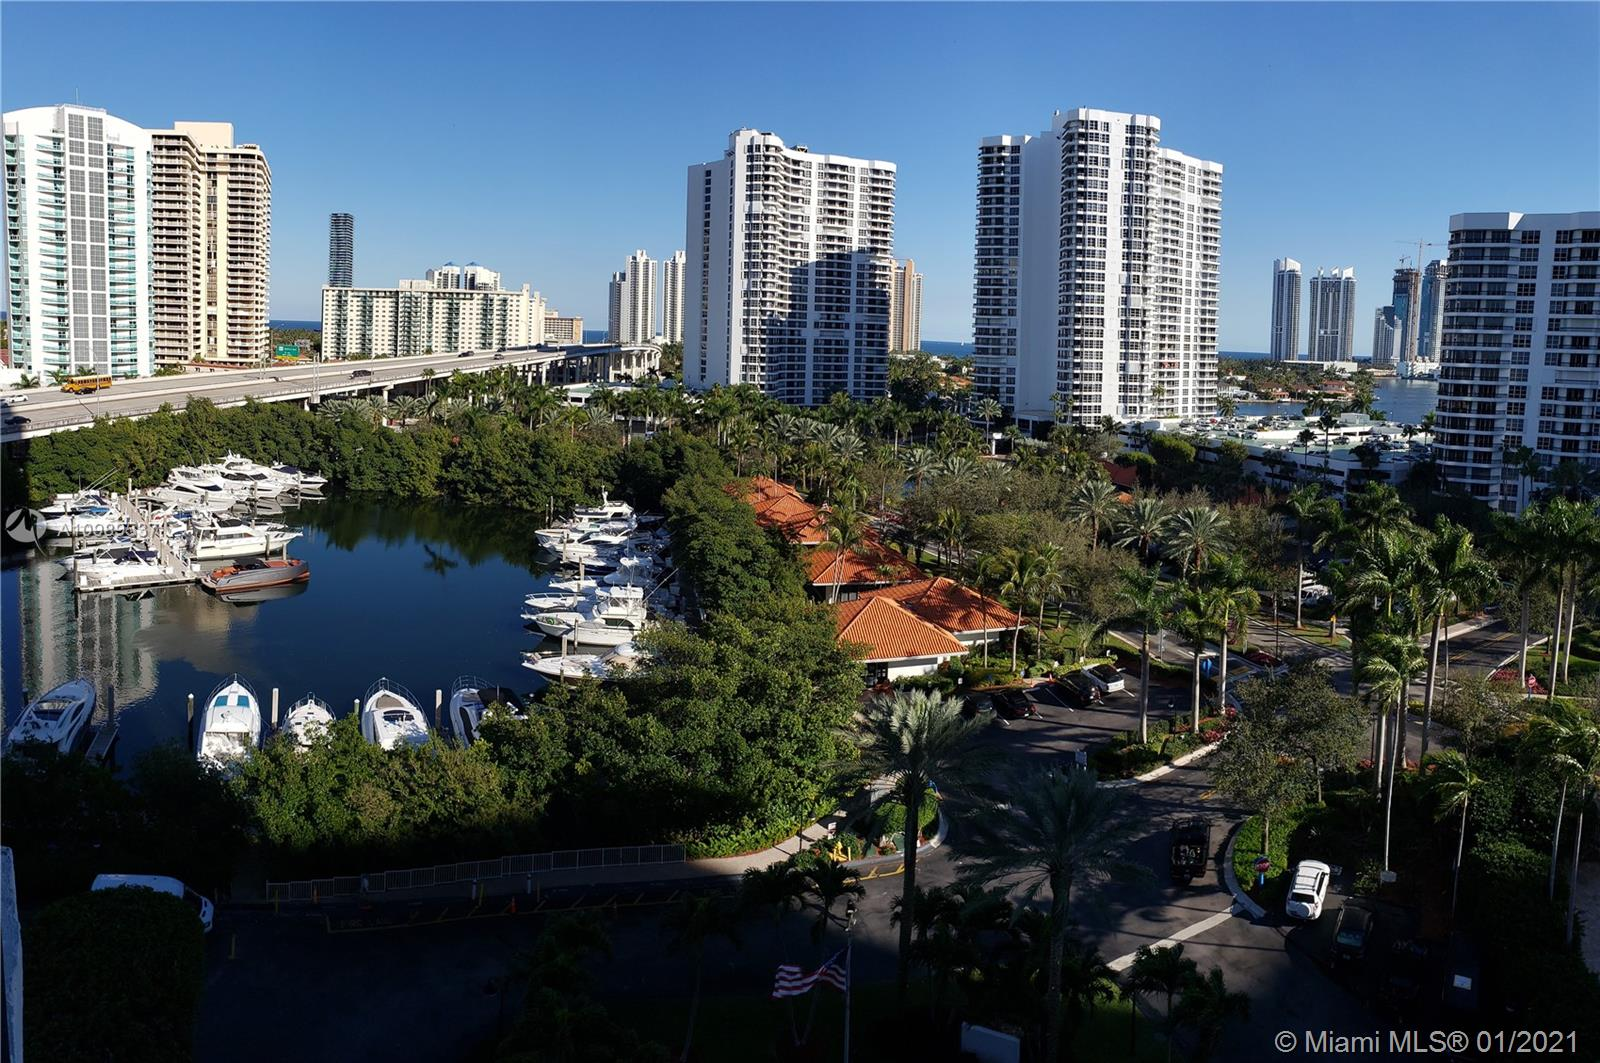 Mystic Pointe Tower 400 #1107 - 3500 Mystic Pointe Dr #1107, Aventura, FL 33180